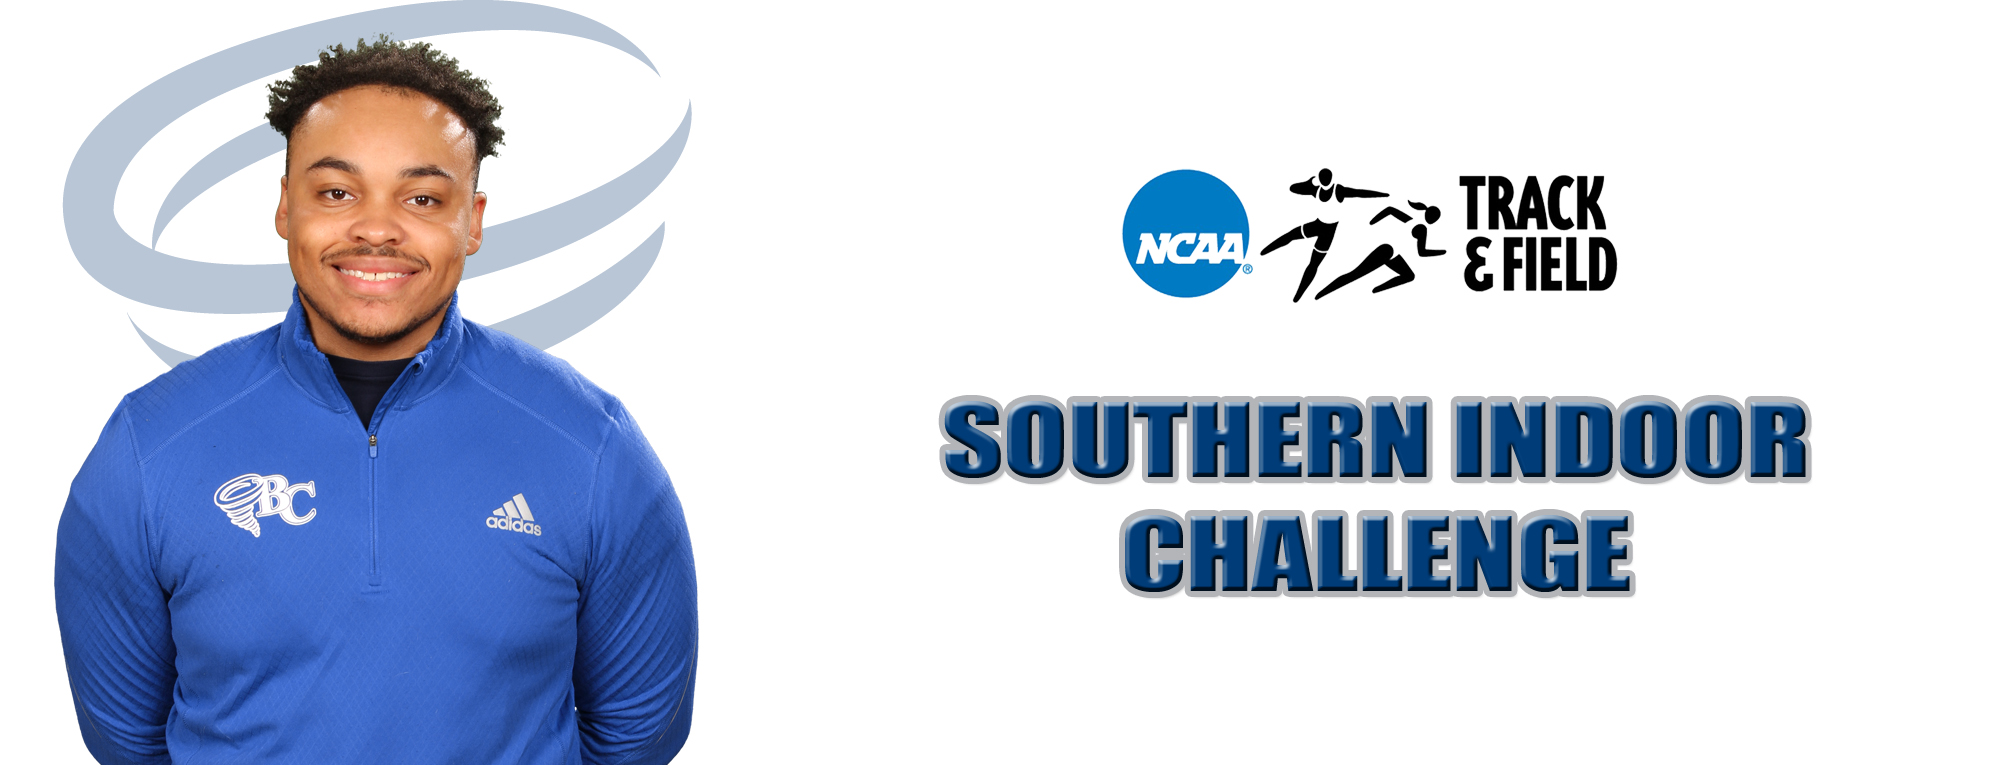 Southern Indoor Challenge Awaits Track & Field